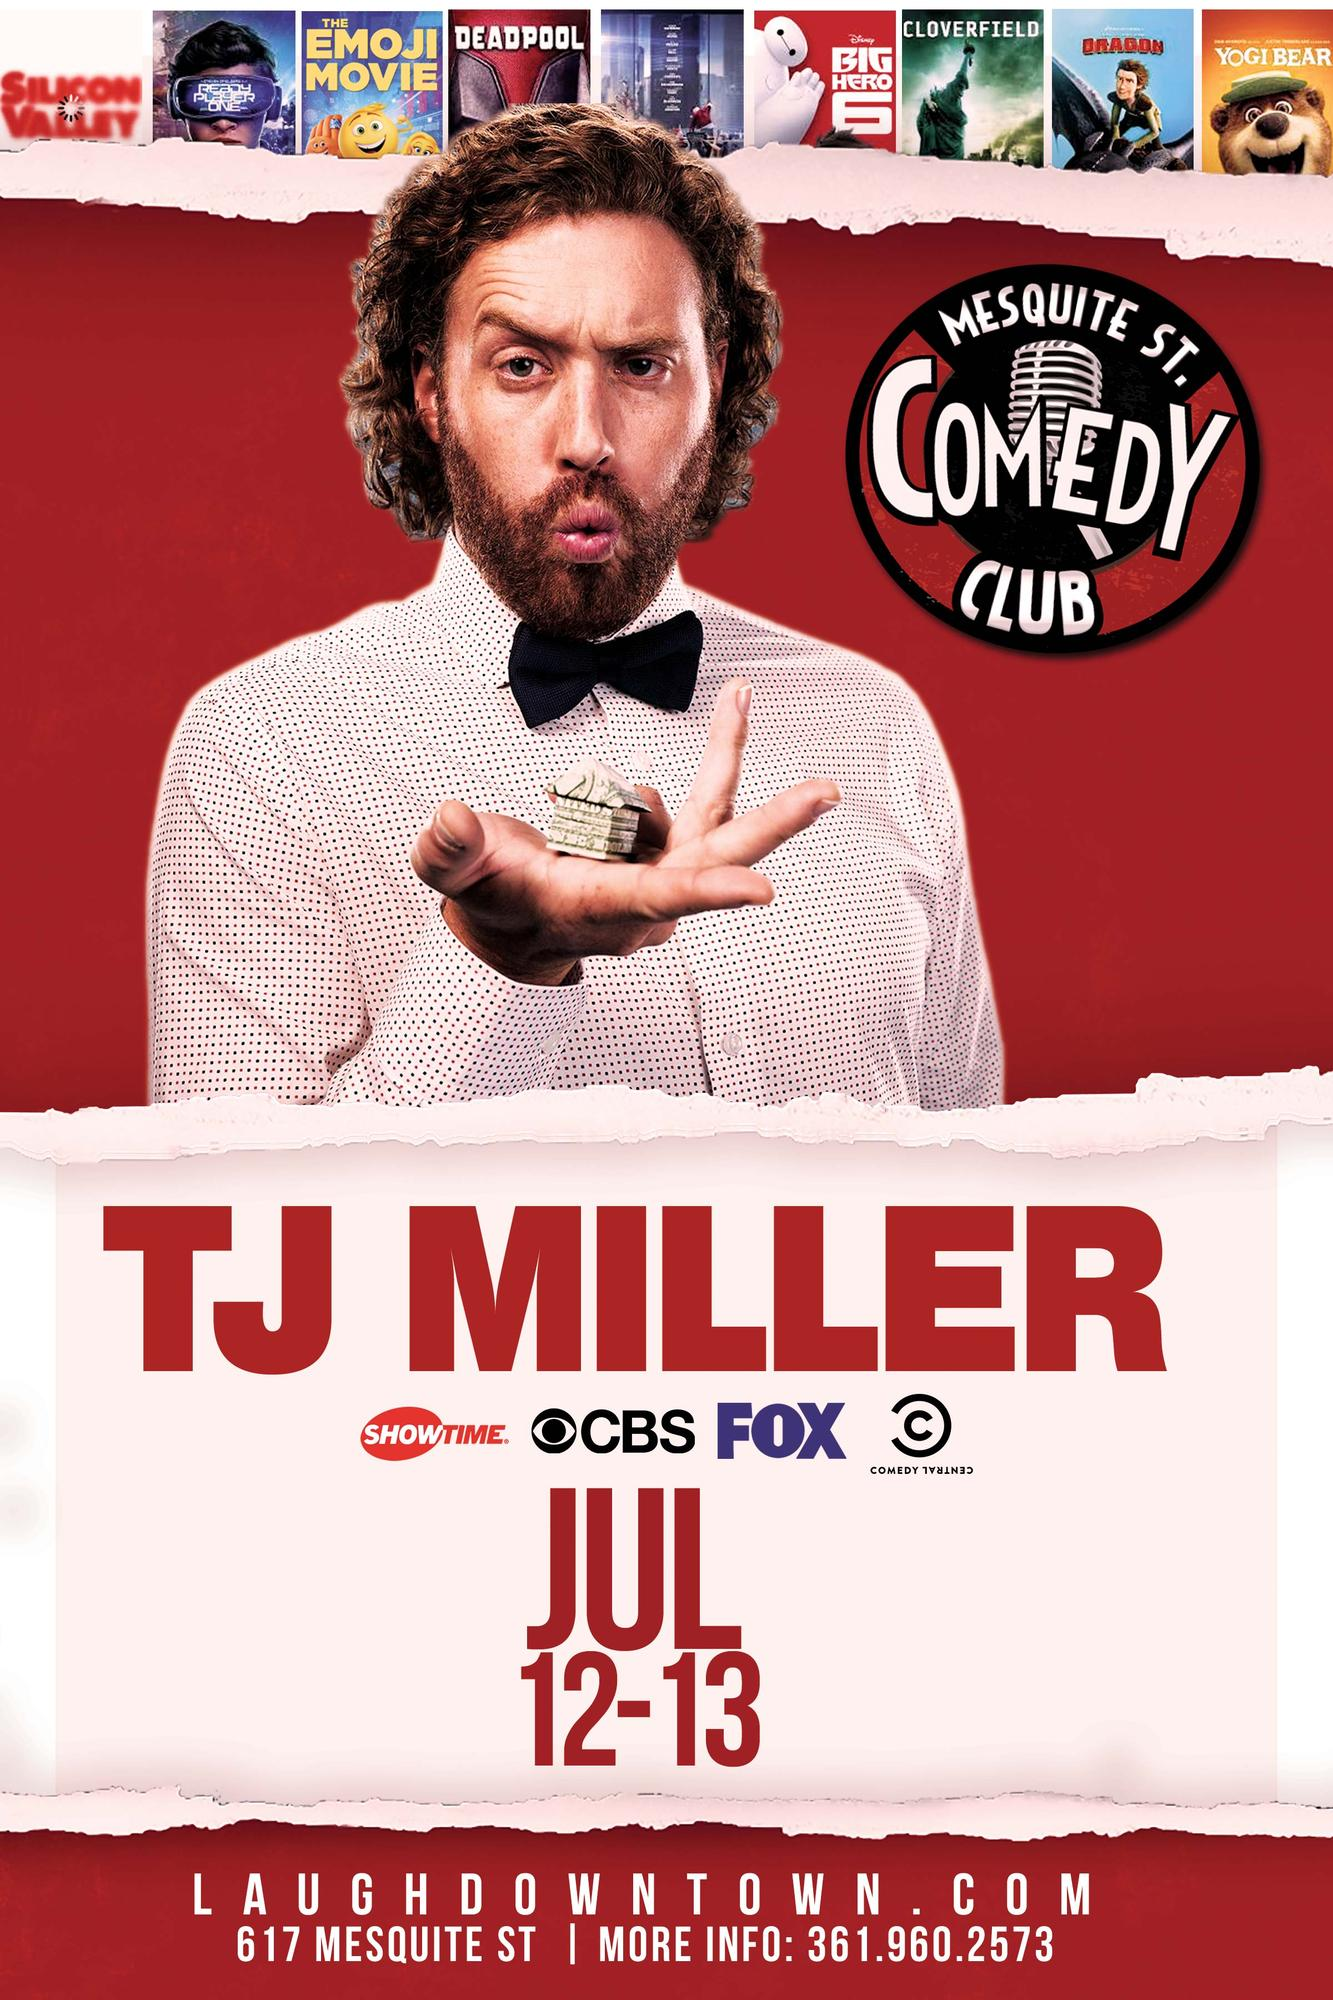 T.J. Miller live (deadpool - transformers ) - 14 JUL 2019